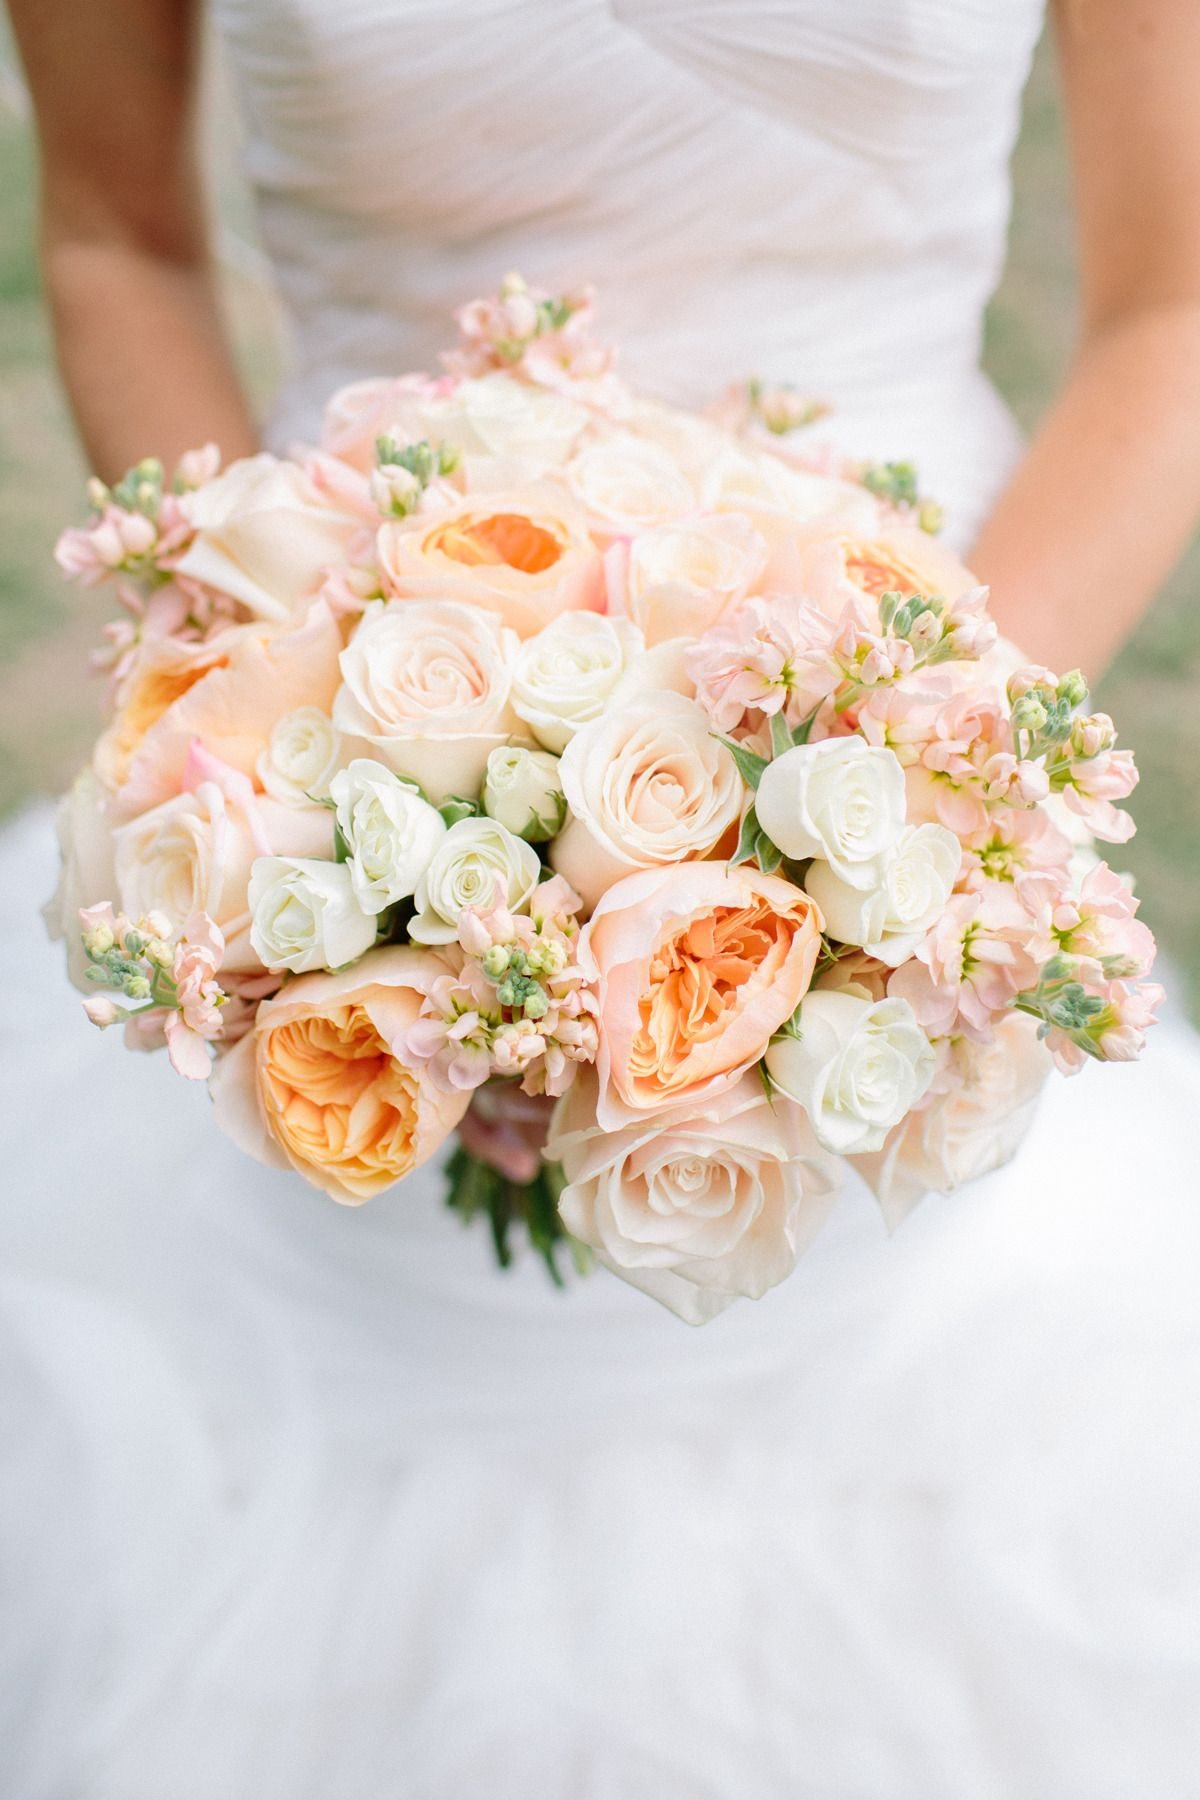 Roses Roses and More Roses! Wedding Bouquet | See the wedding on SMP: http://www.StyleMePretty.com/texas-weddings/fort-worth/2014/02/10/romantic-lakeside-arm-wedding/ Ashley Bosnick Photography